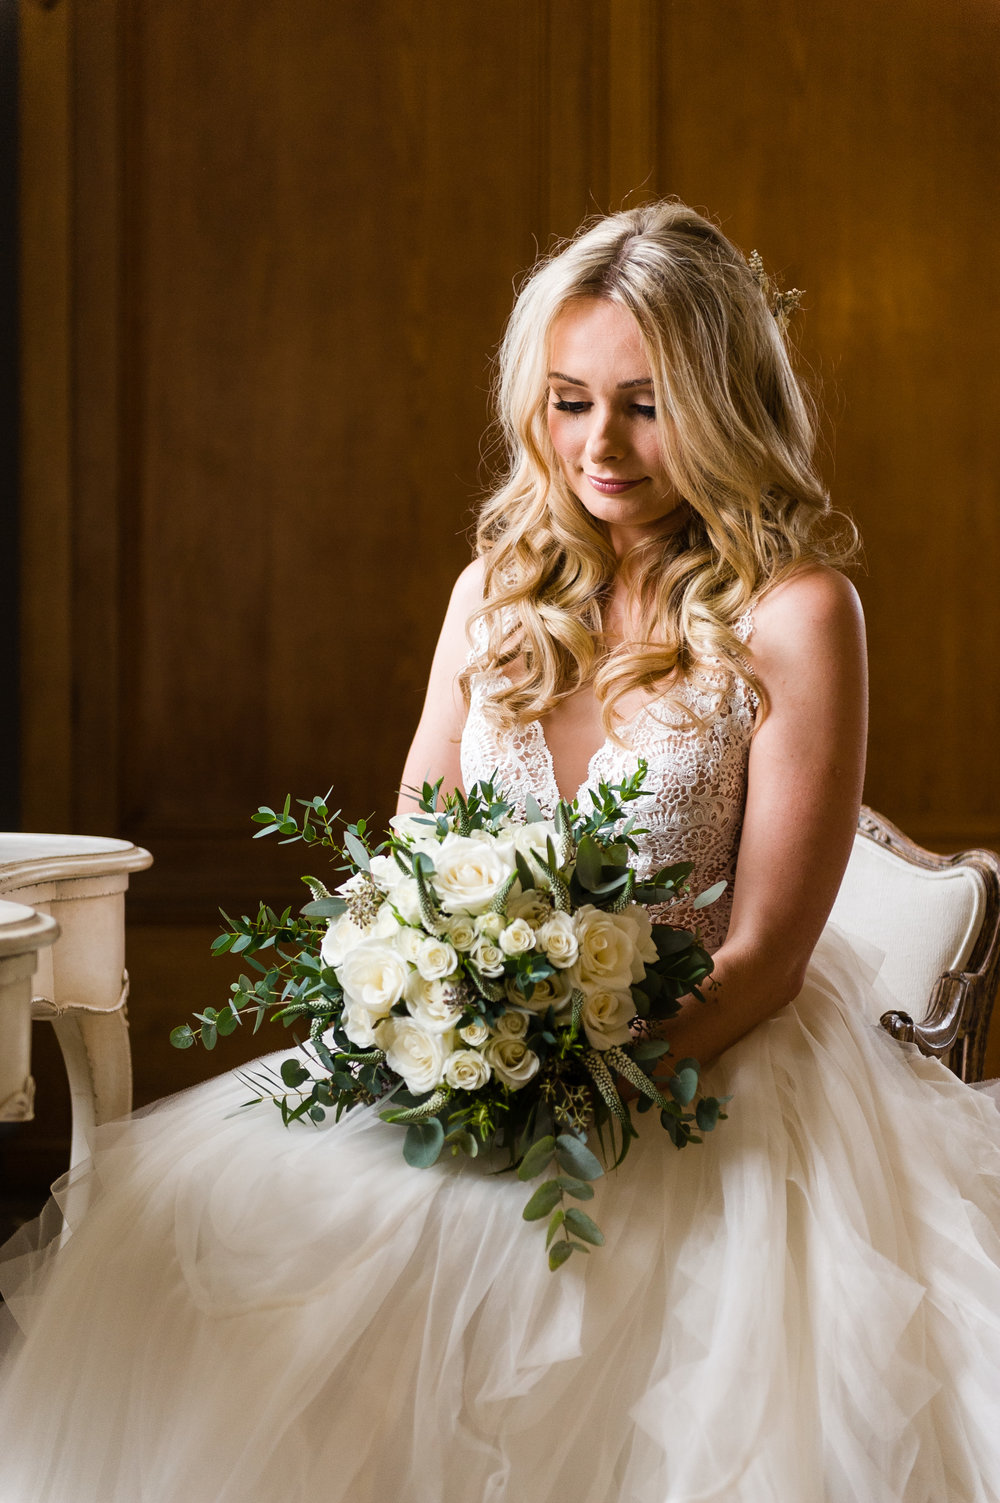 Bridal flowers by Derbyshire florist Tineke for a wedding at Thicket Priory, Yorkshire